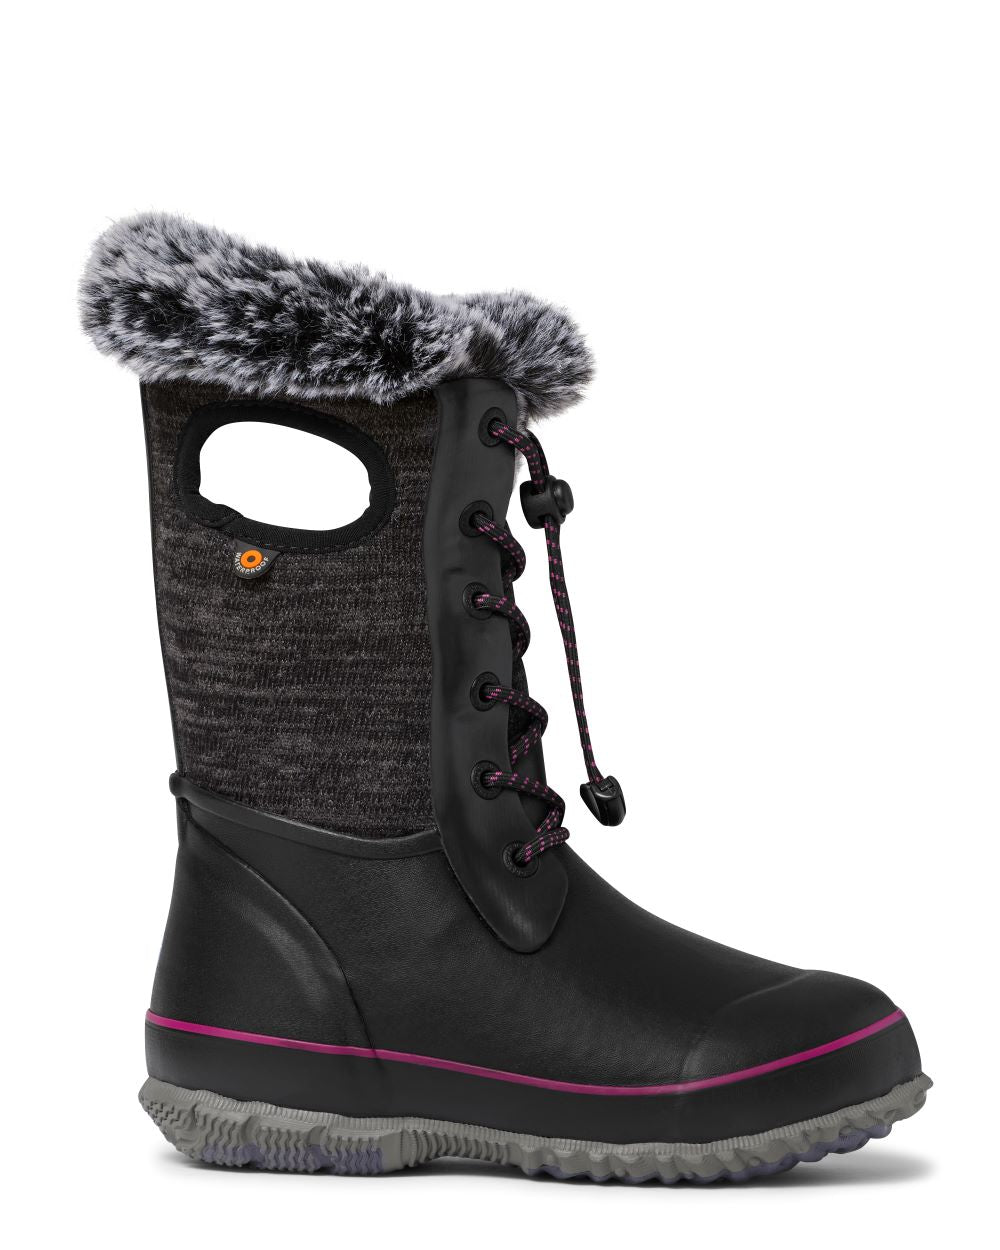 'BOGS' Kids' Arcata Knit Insulated WP Winter - Black Multi